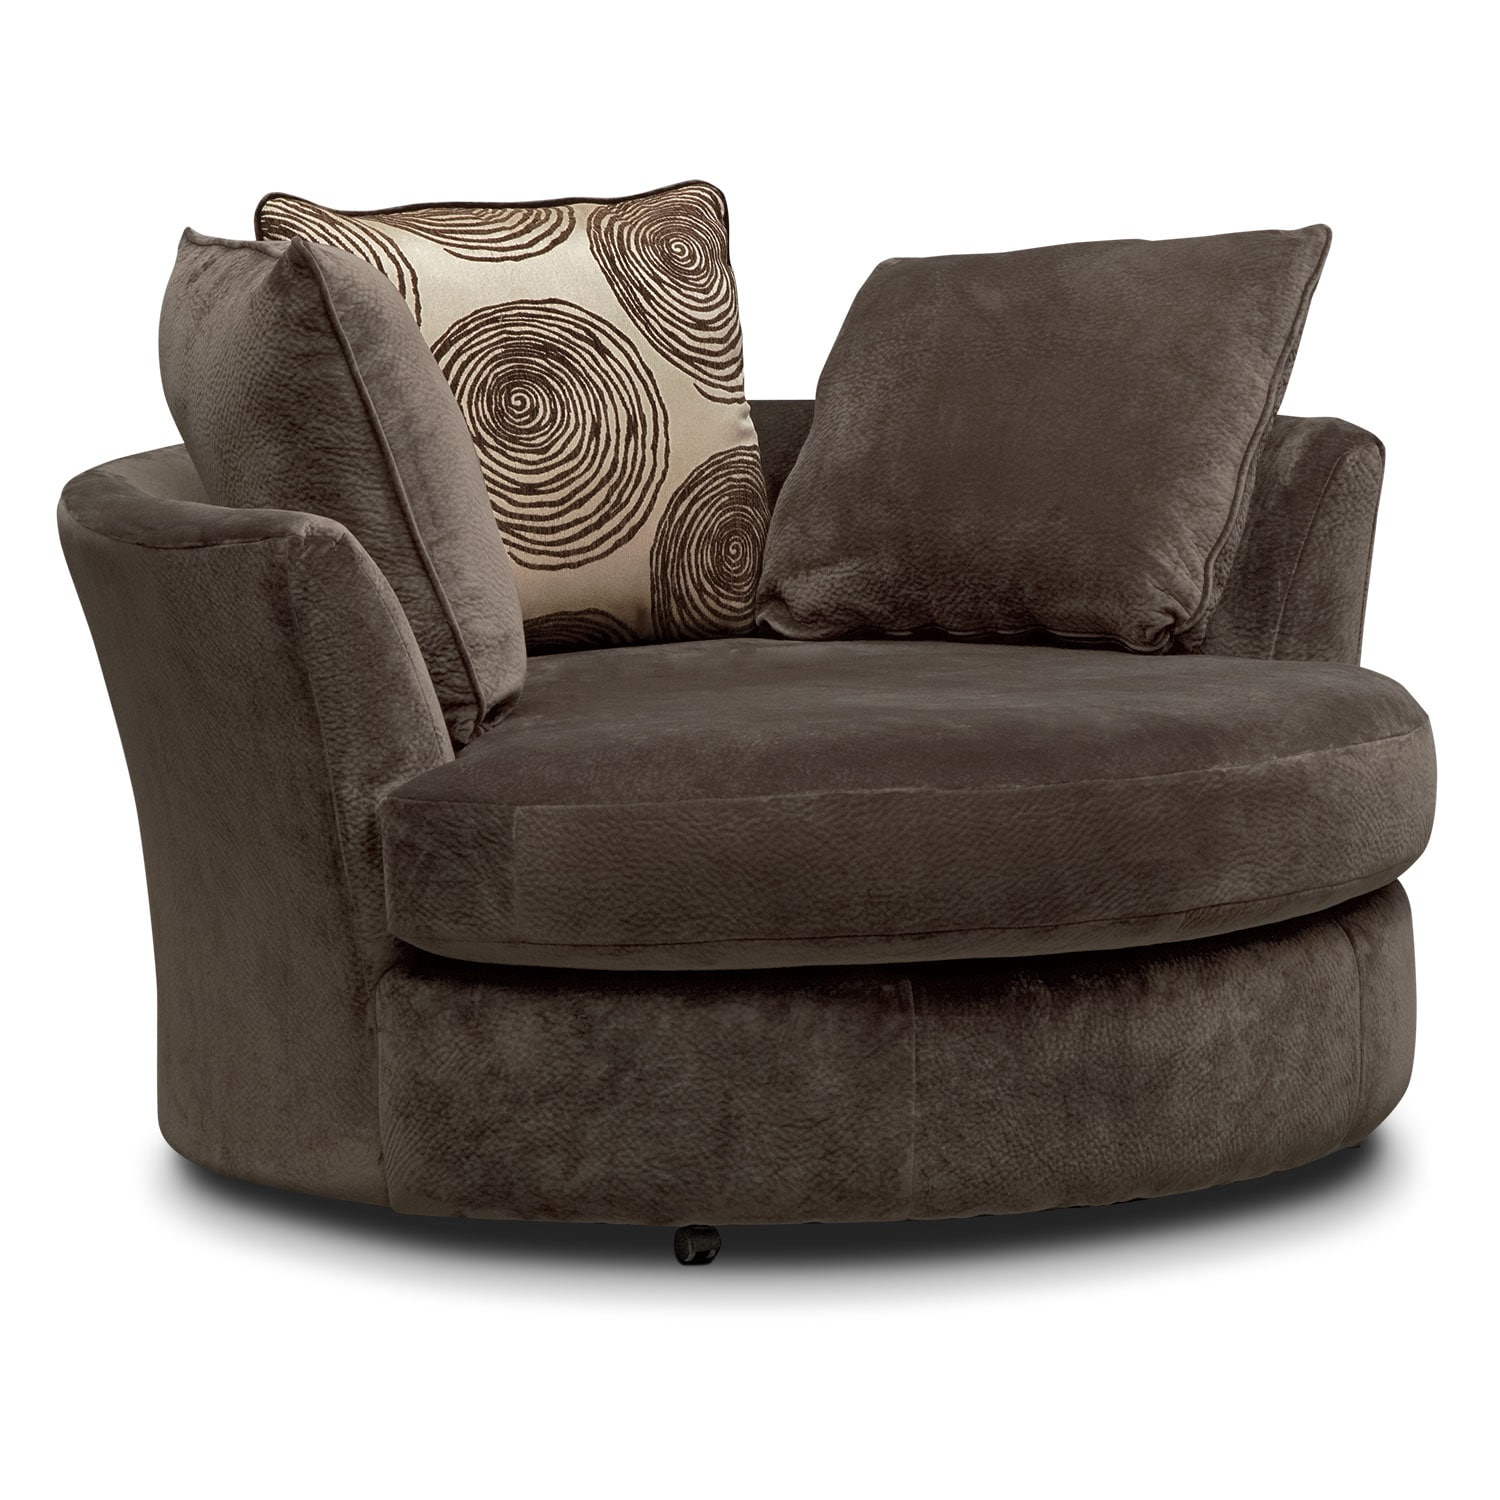 Cordelle Swivel Chair Chocolate American Signature Furniture